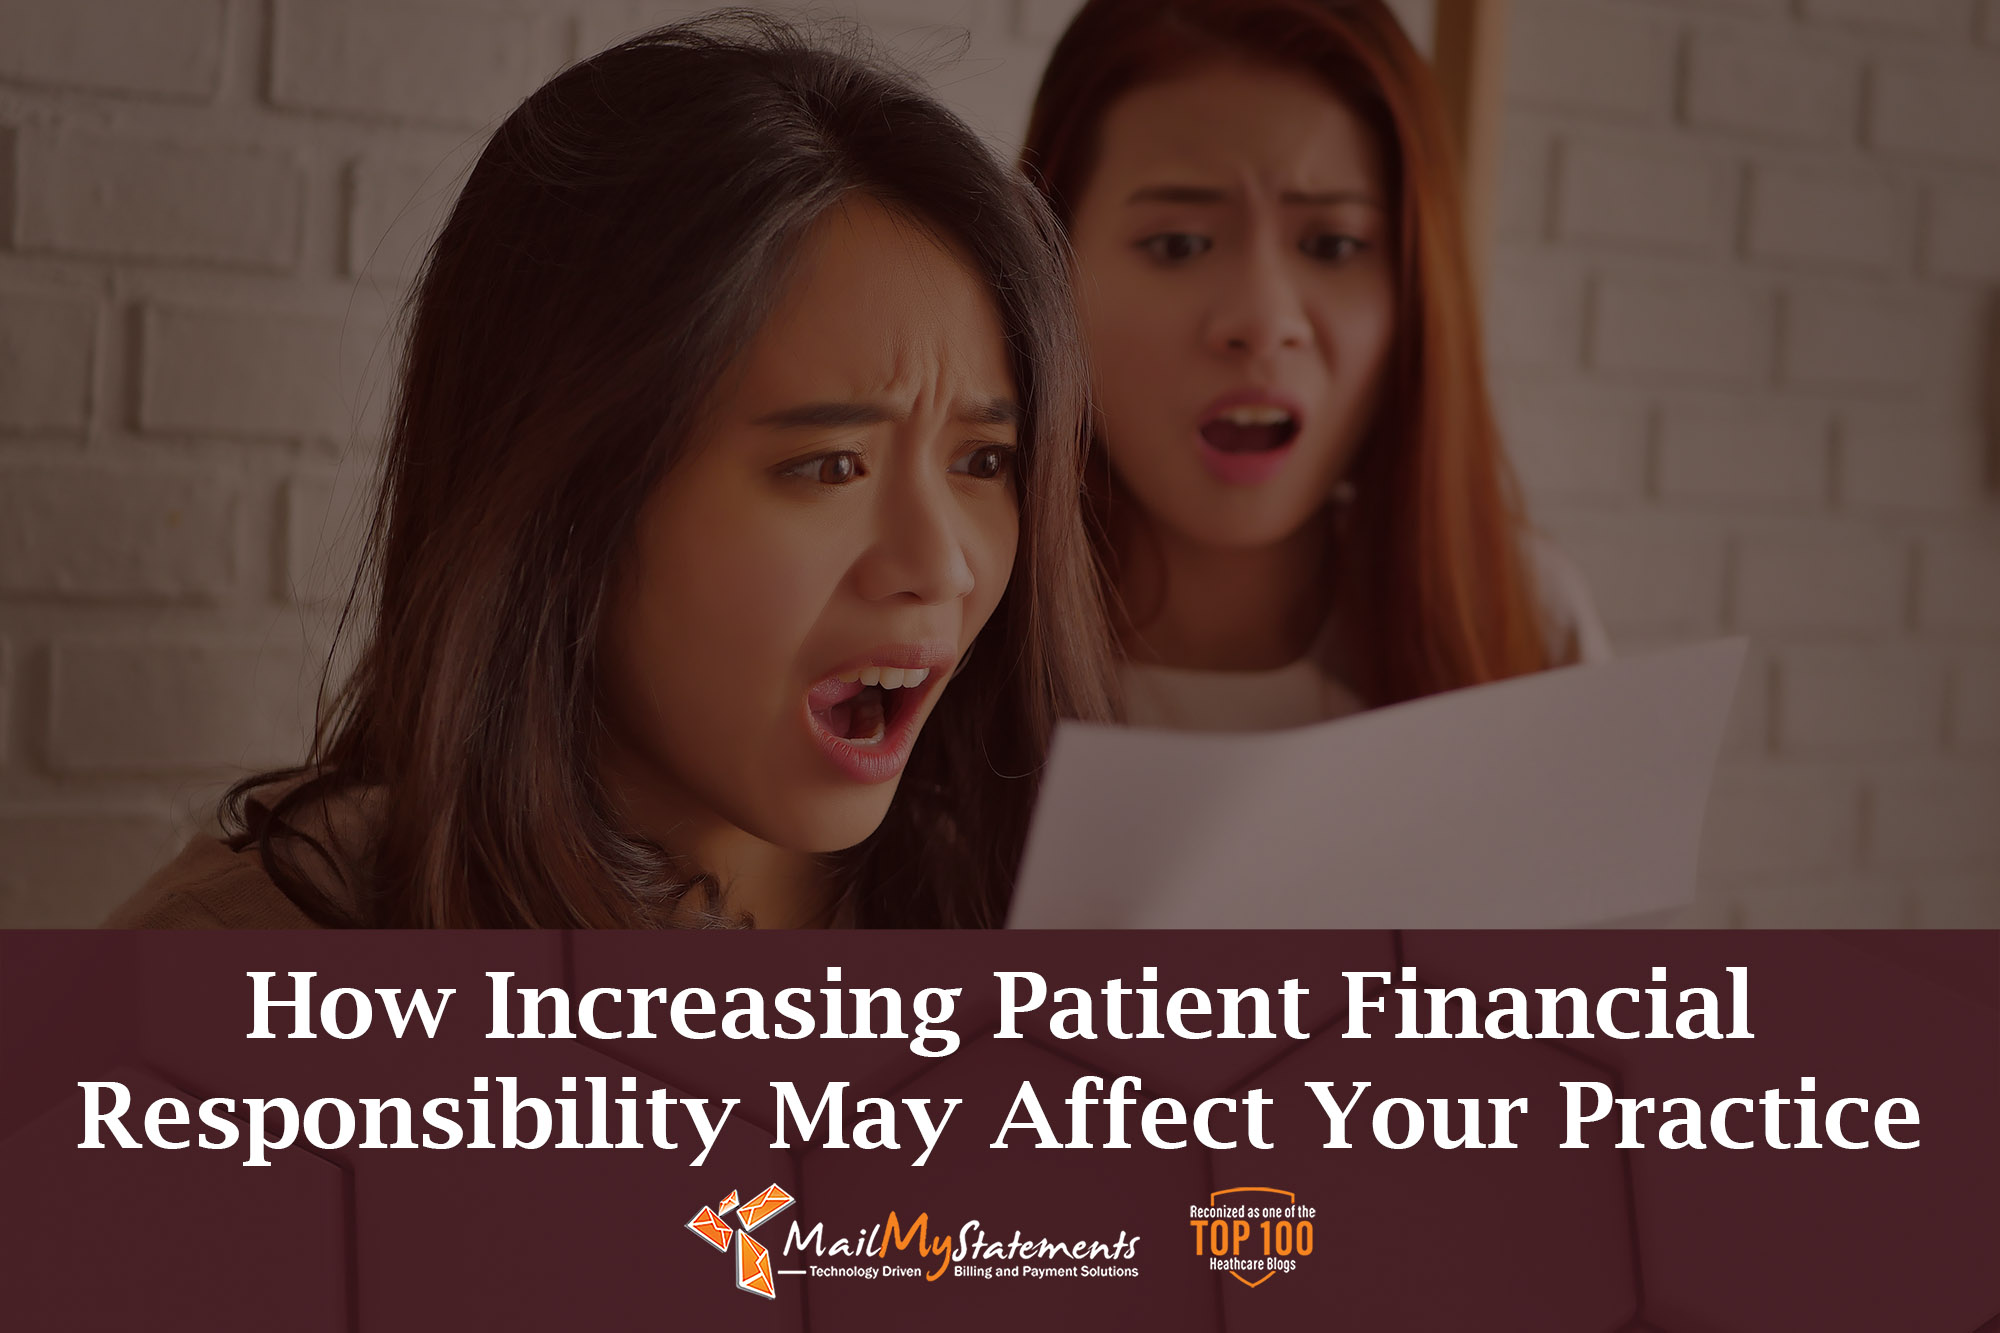 How Increasing Patient Financial Responsibility May Affect Your Practice